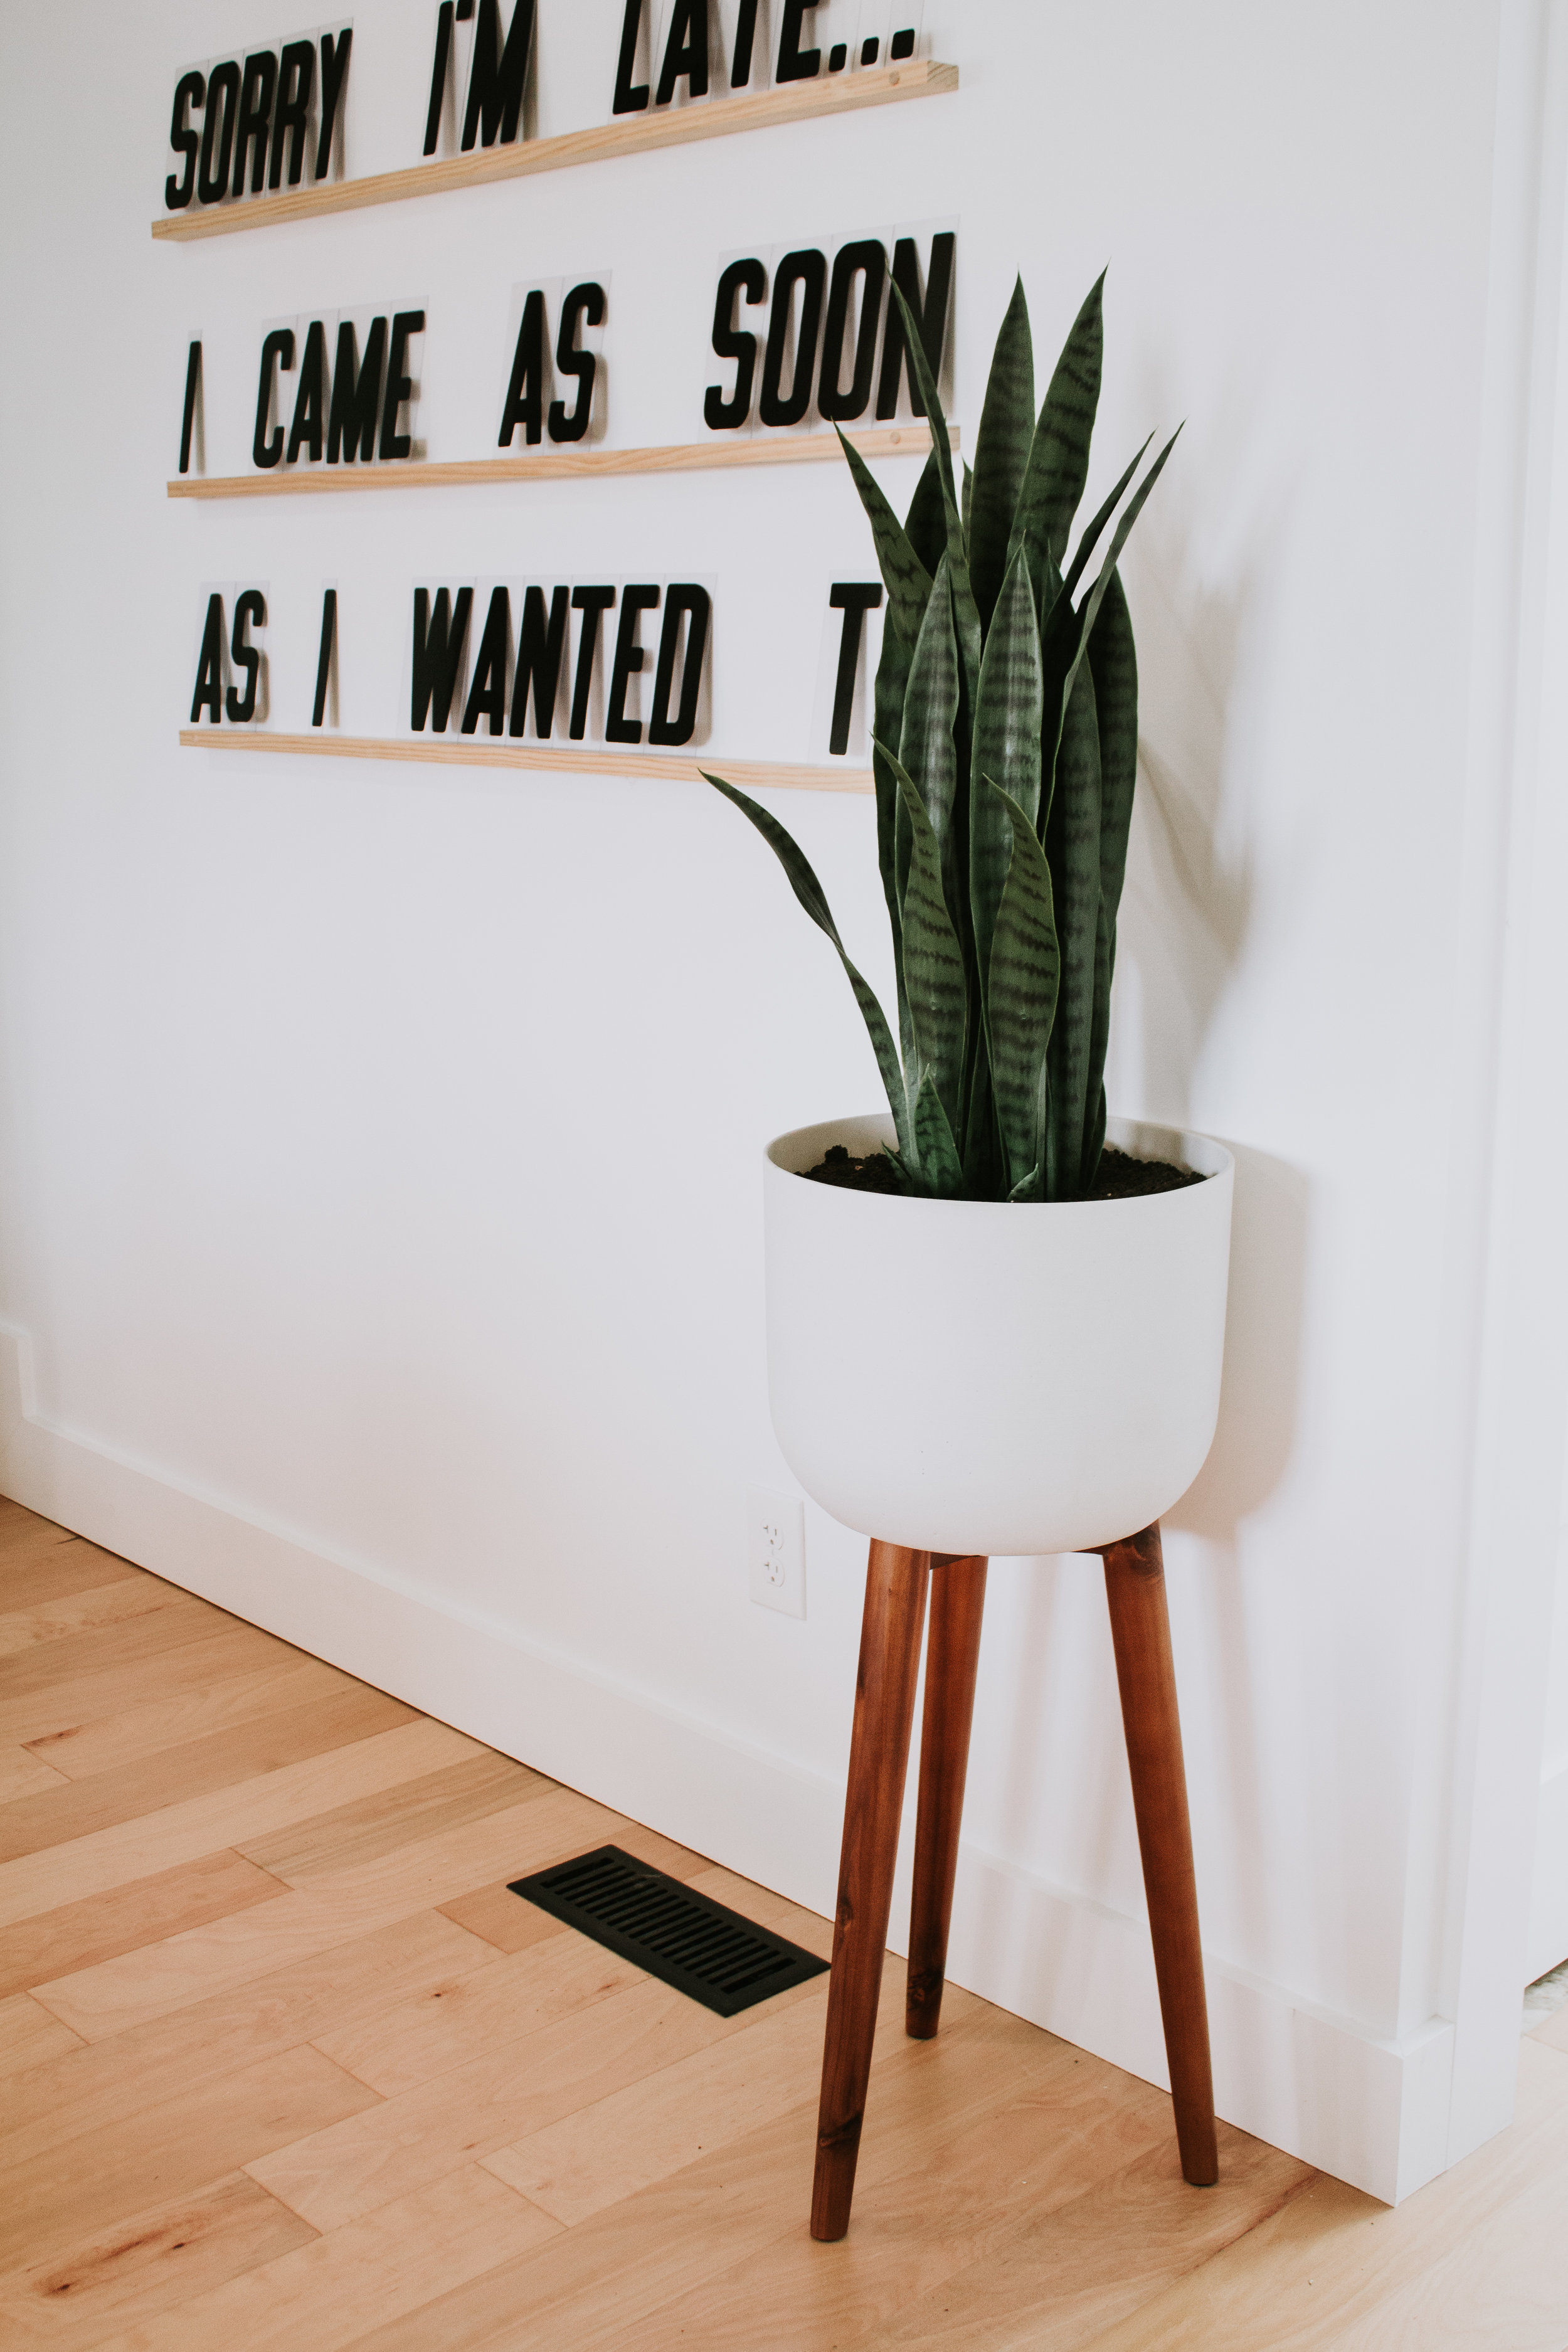 How to make a faux plant look real - DIY by Nadine Stay.  Interior design tips for fake plants. Use supplies you have in your home to make a faux plant look real.